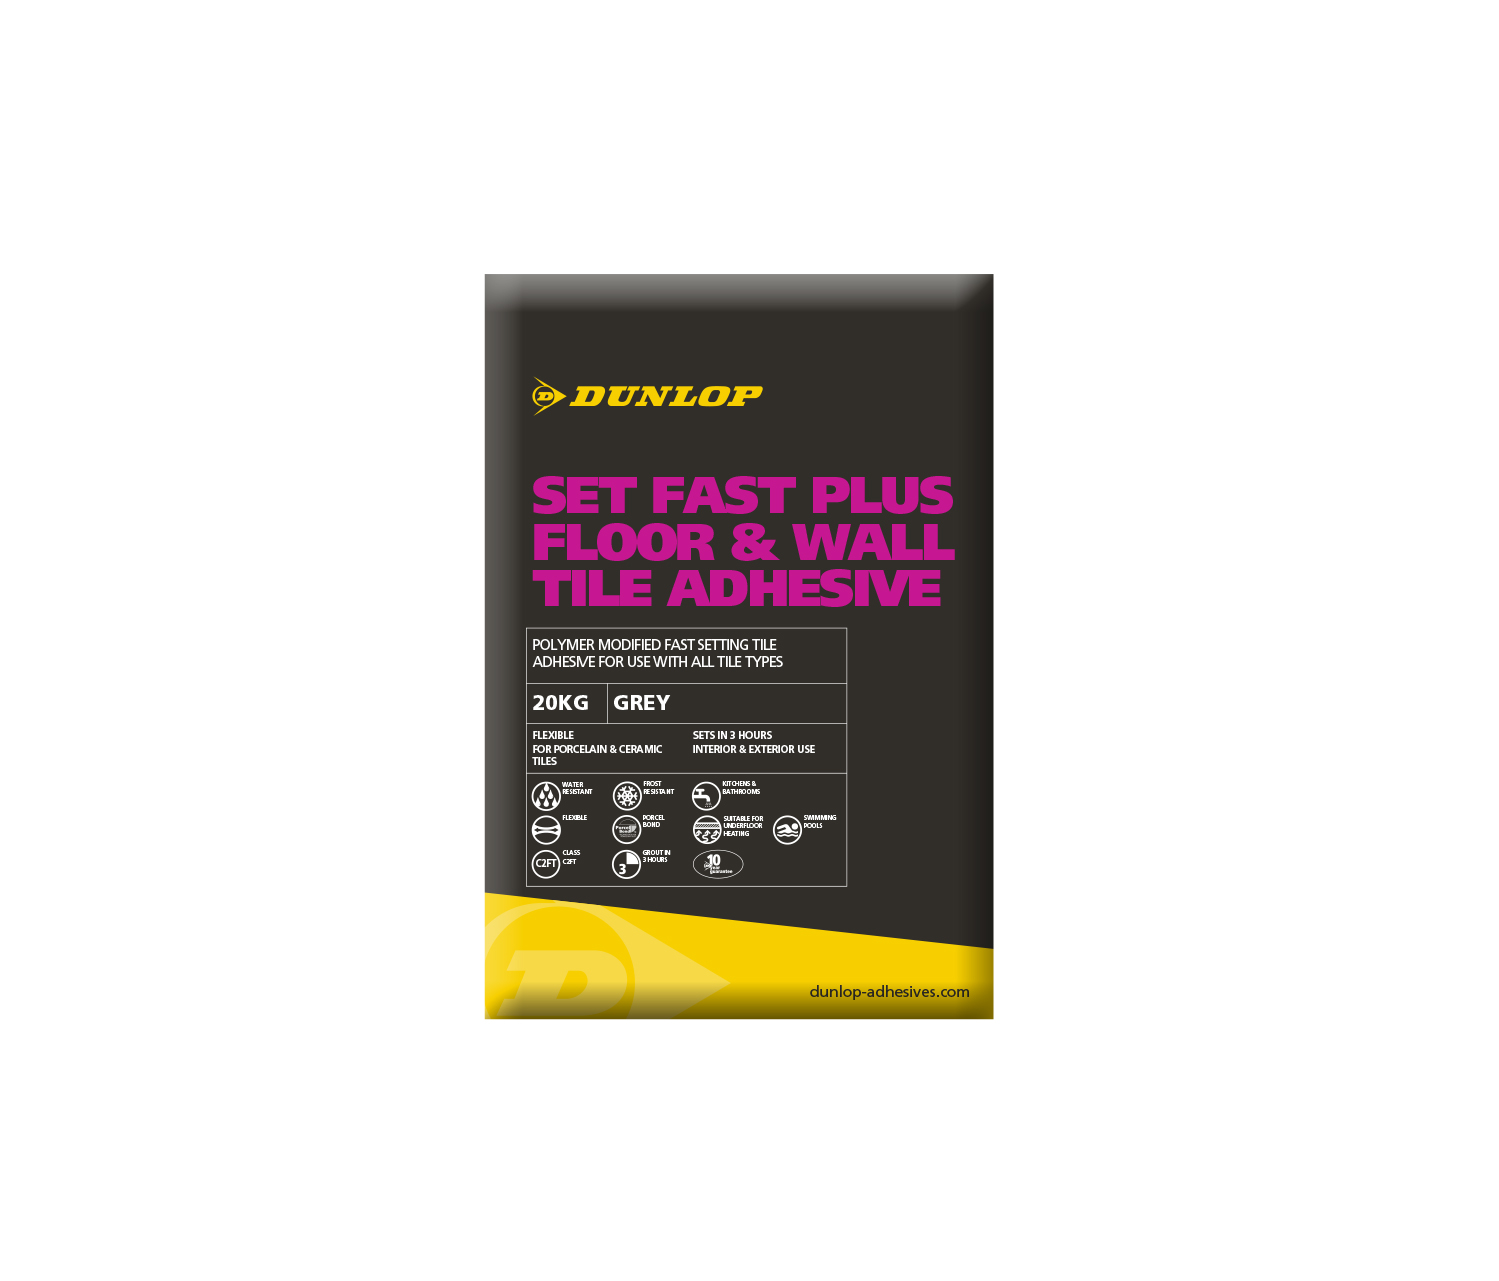 Dunlop Set Fast Plus Floor Wall Tile Adhesive White Kg - Fast drying tile adhesive